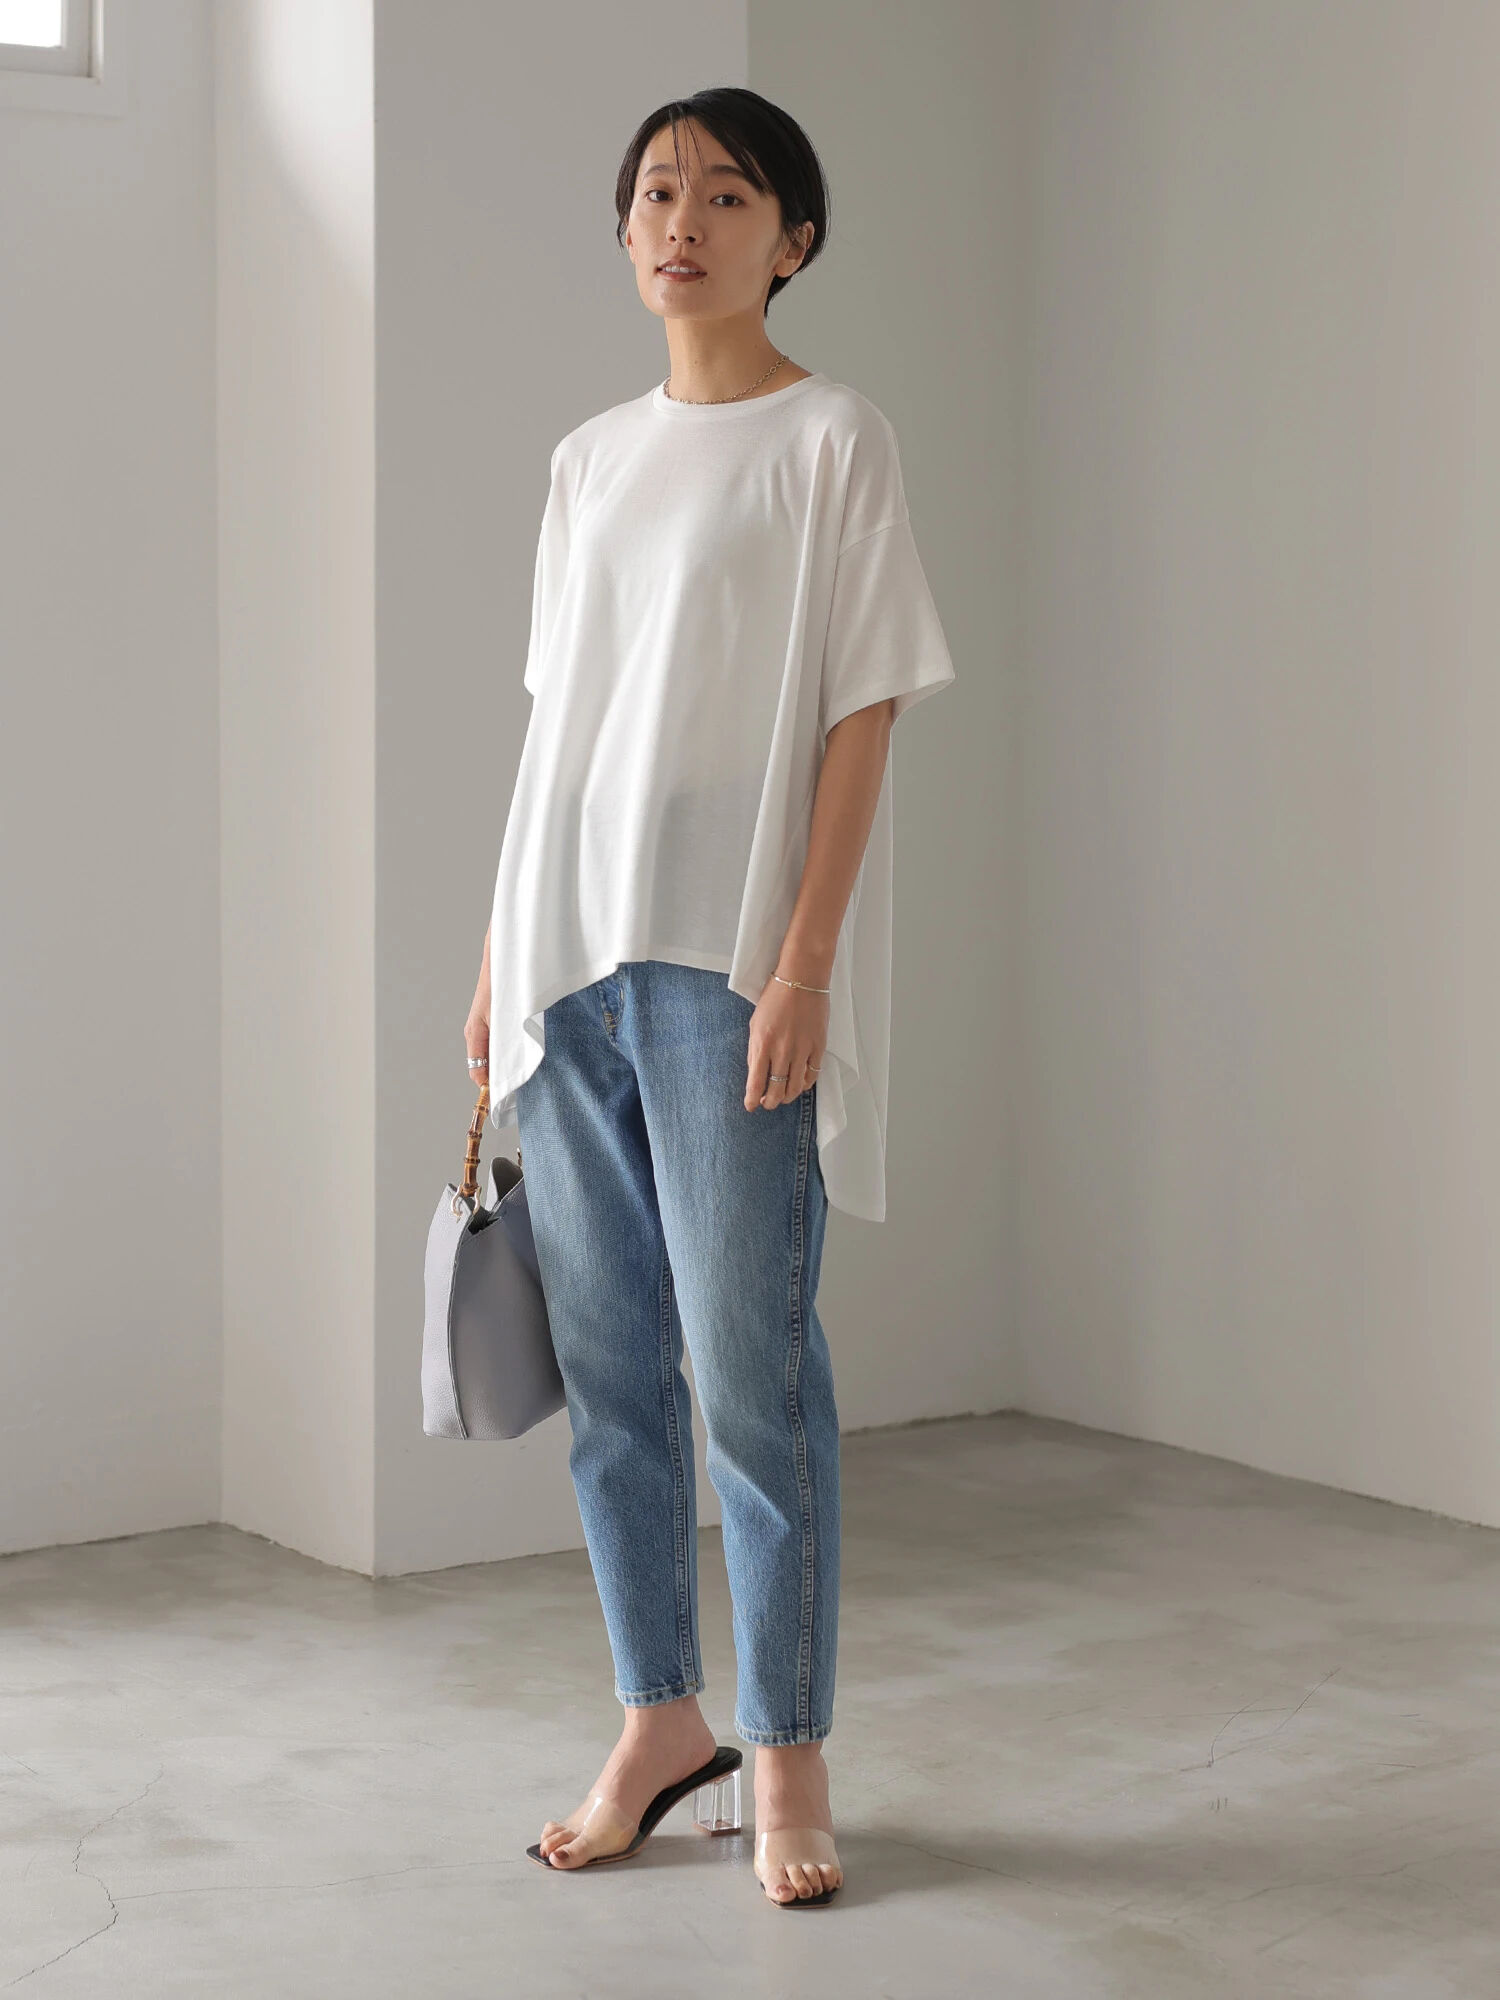 American Holic Machi Loose Short Sleeves Blouse - Off White